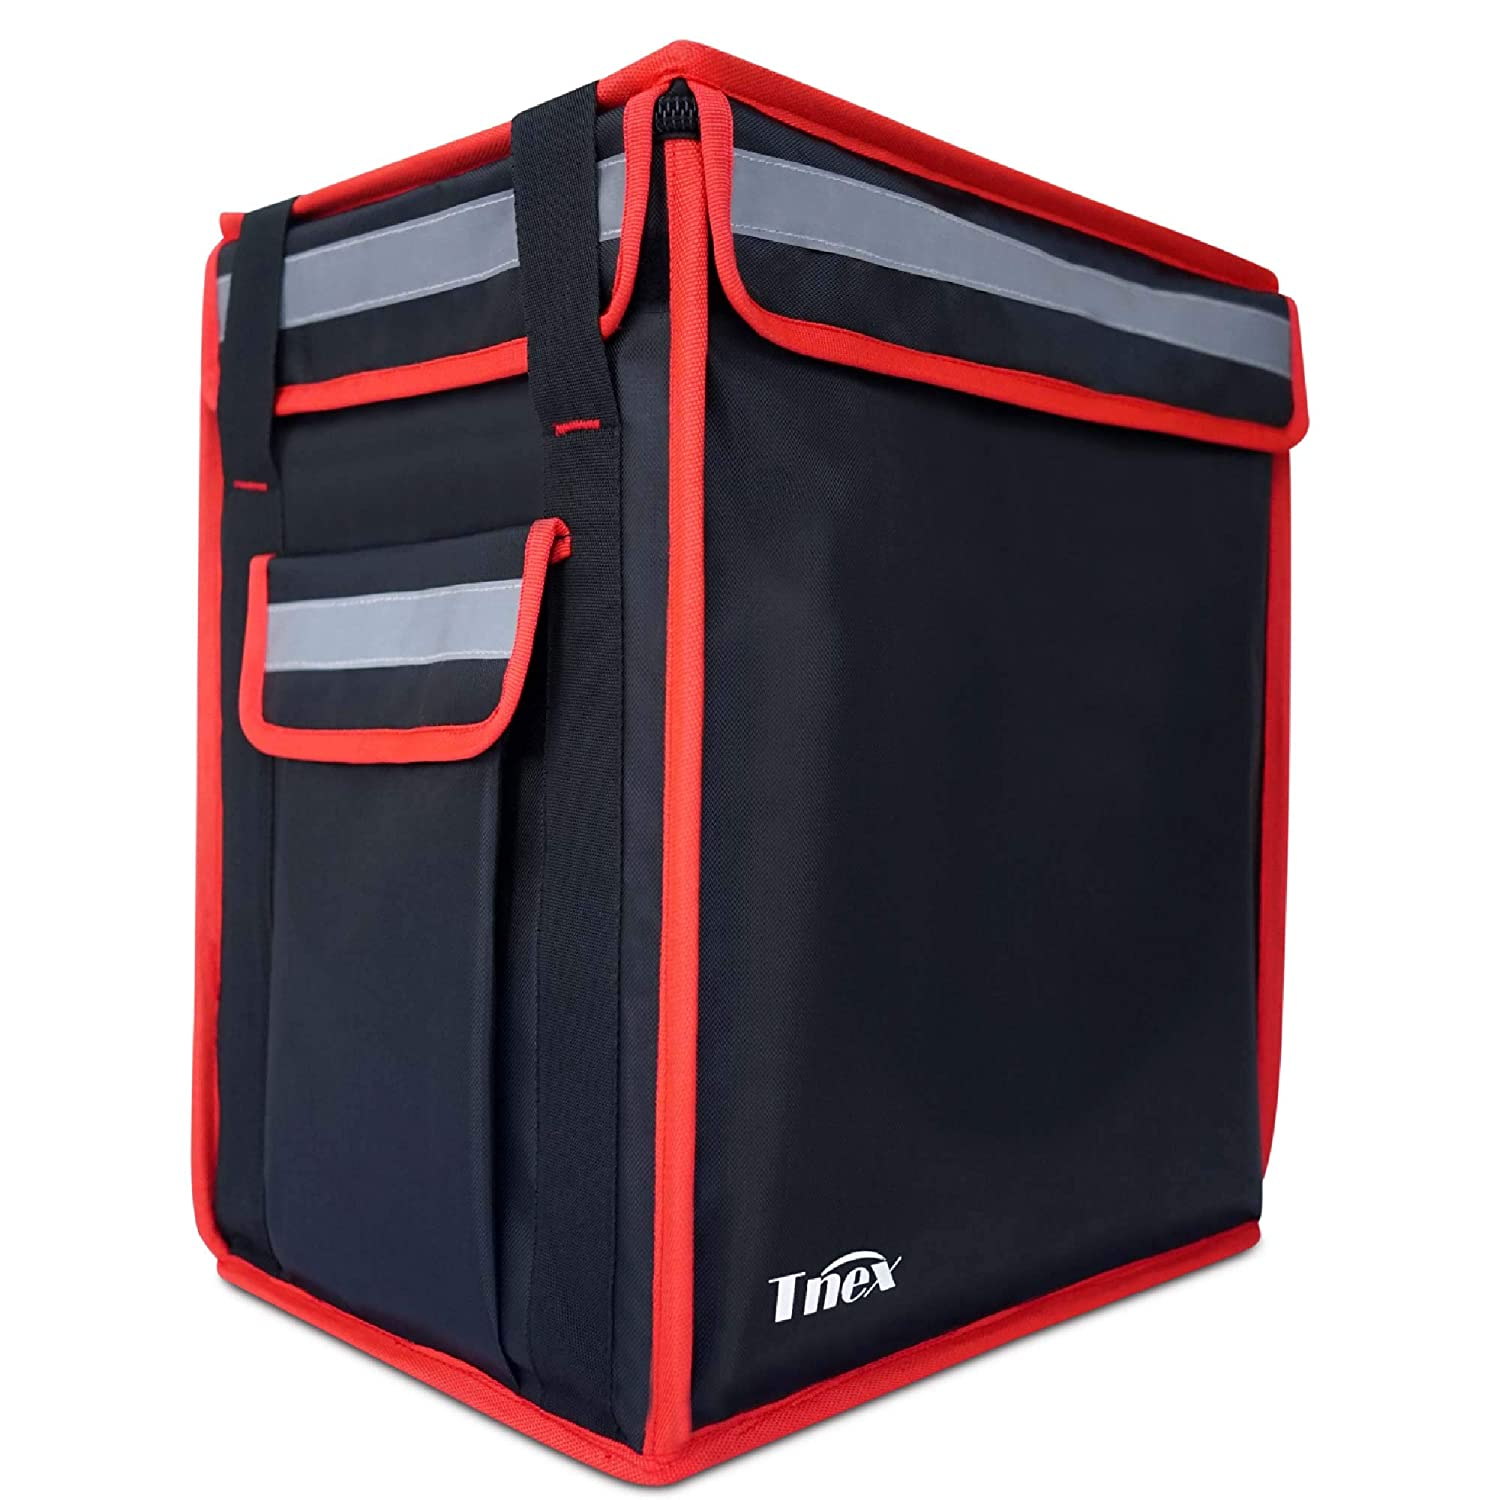 Tnex Thermal Insulated Food Delivery Bag XL-17x15x11